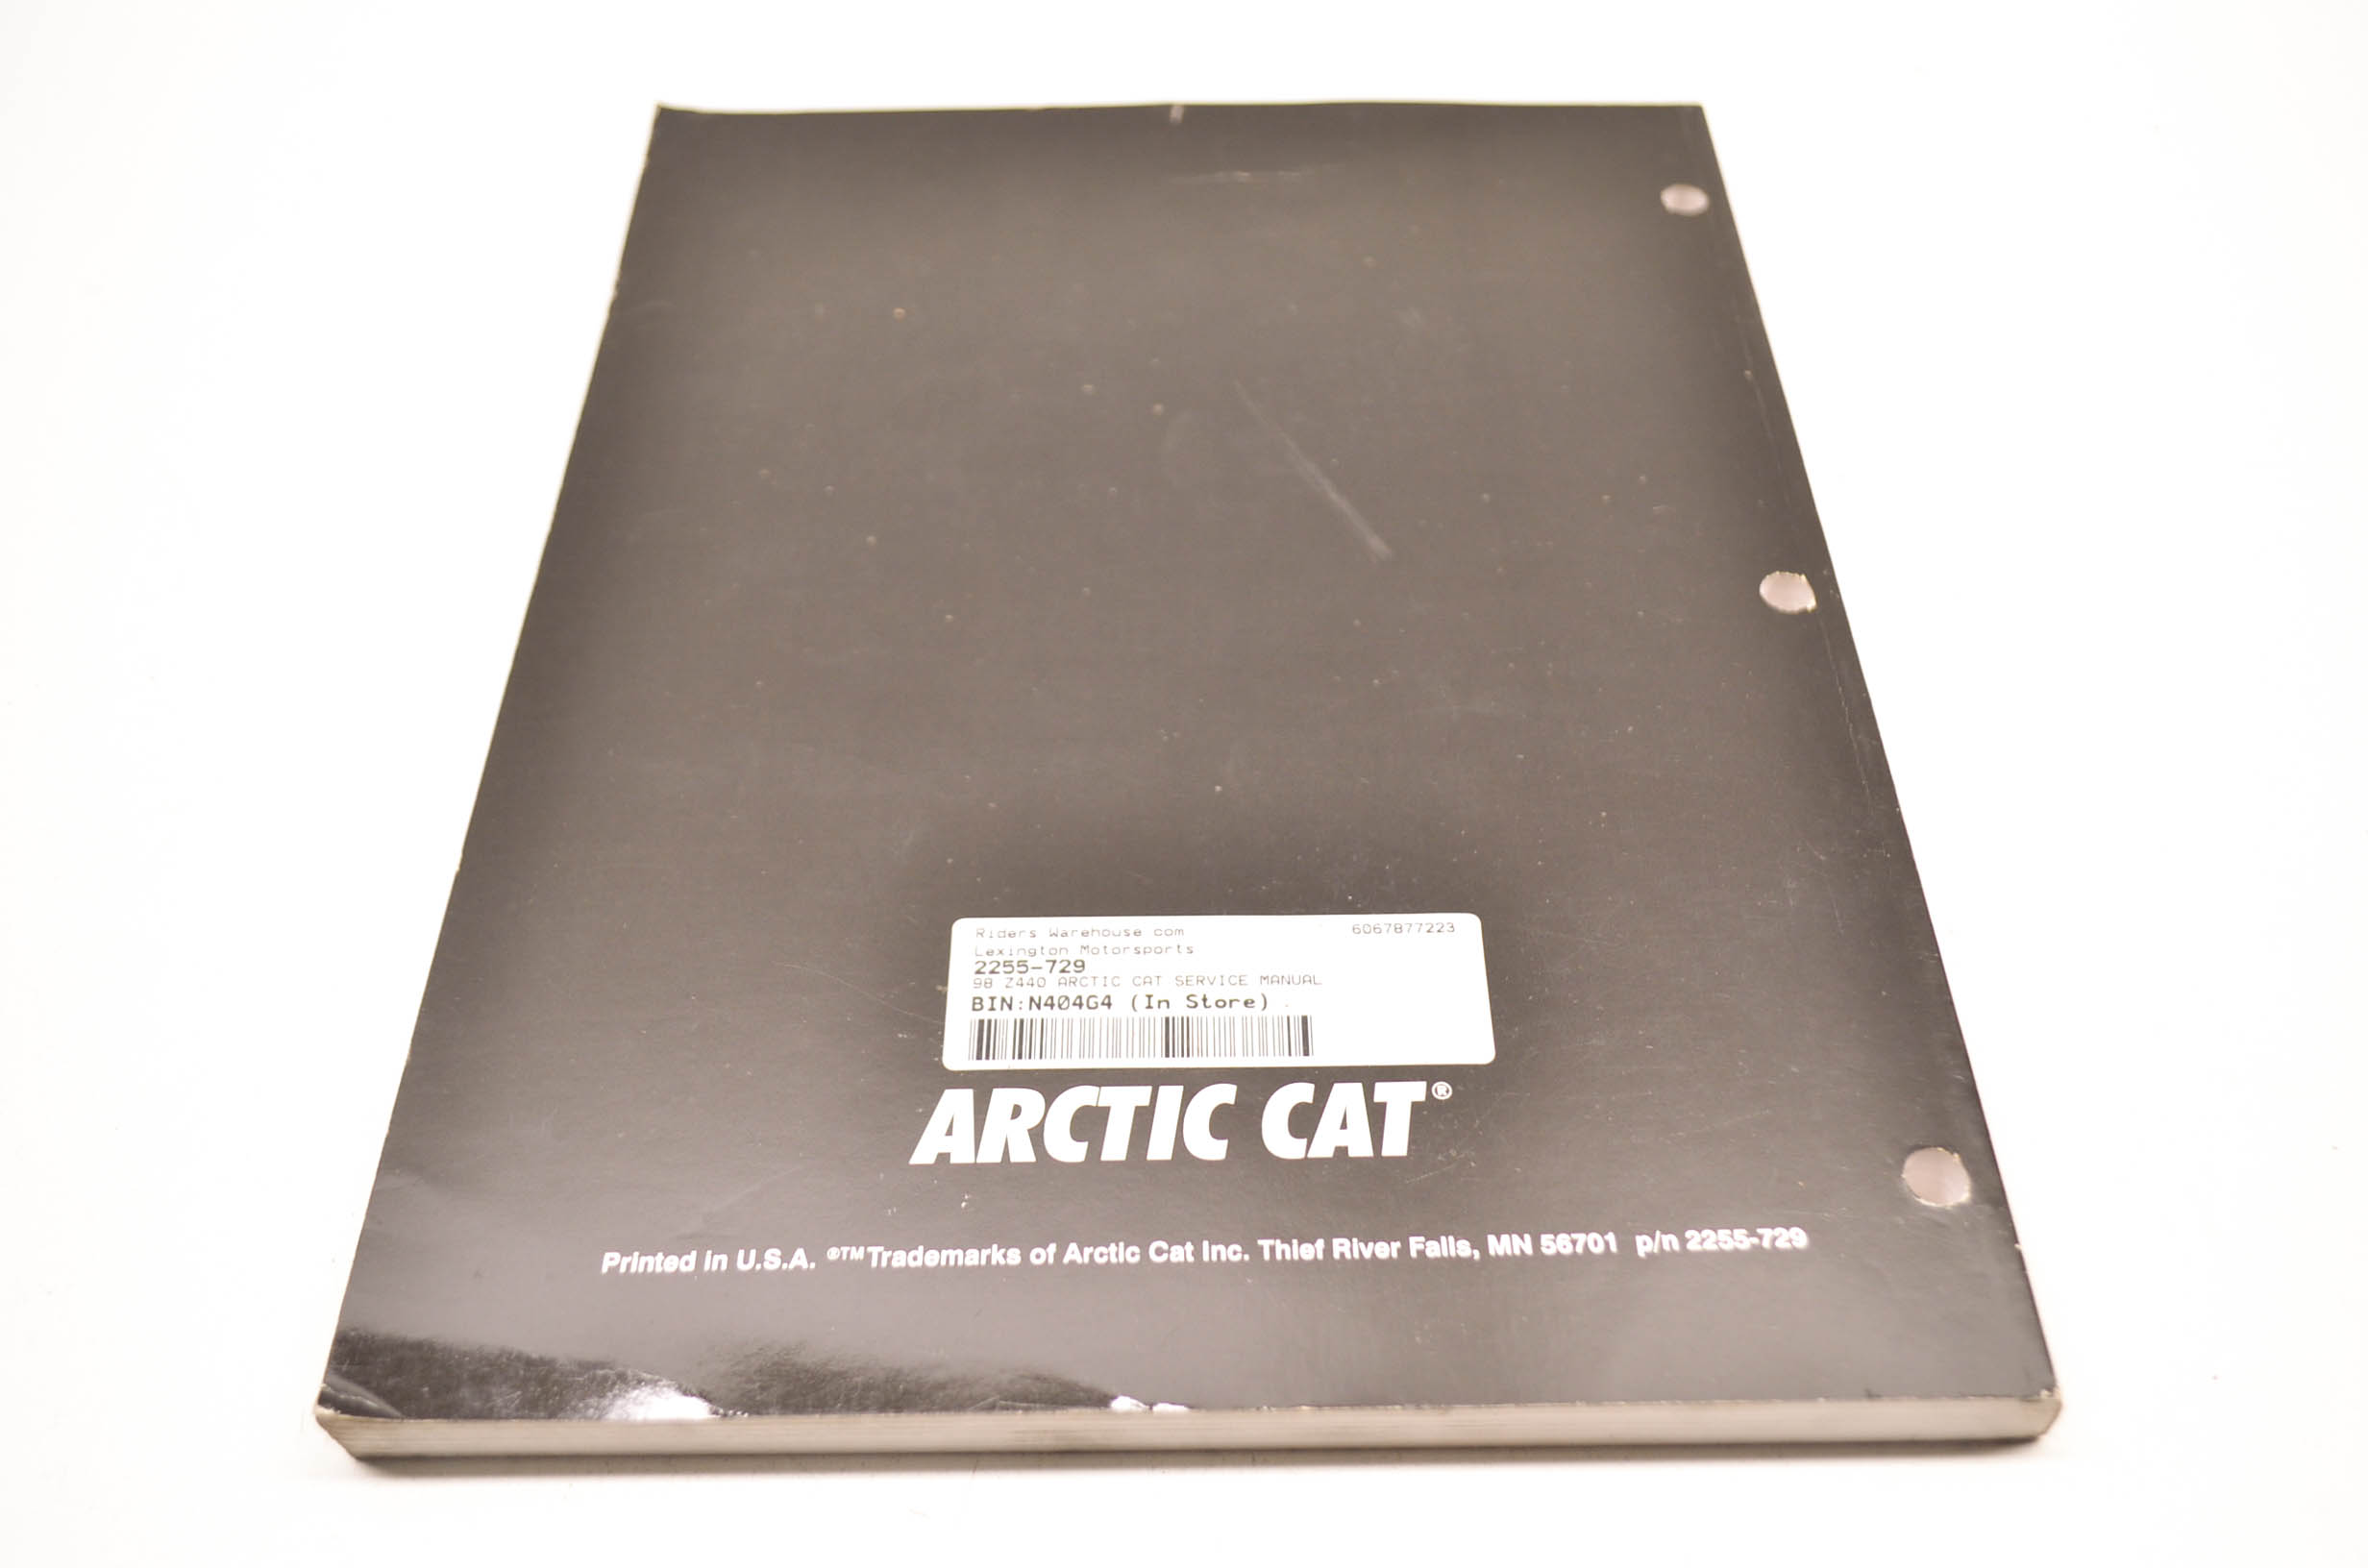 Arctic Cat Z 440 Wiring Diagram Library Z440 2255 729 98 Service Manual Qty 1 Walmartcom